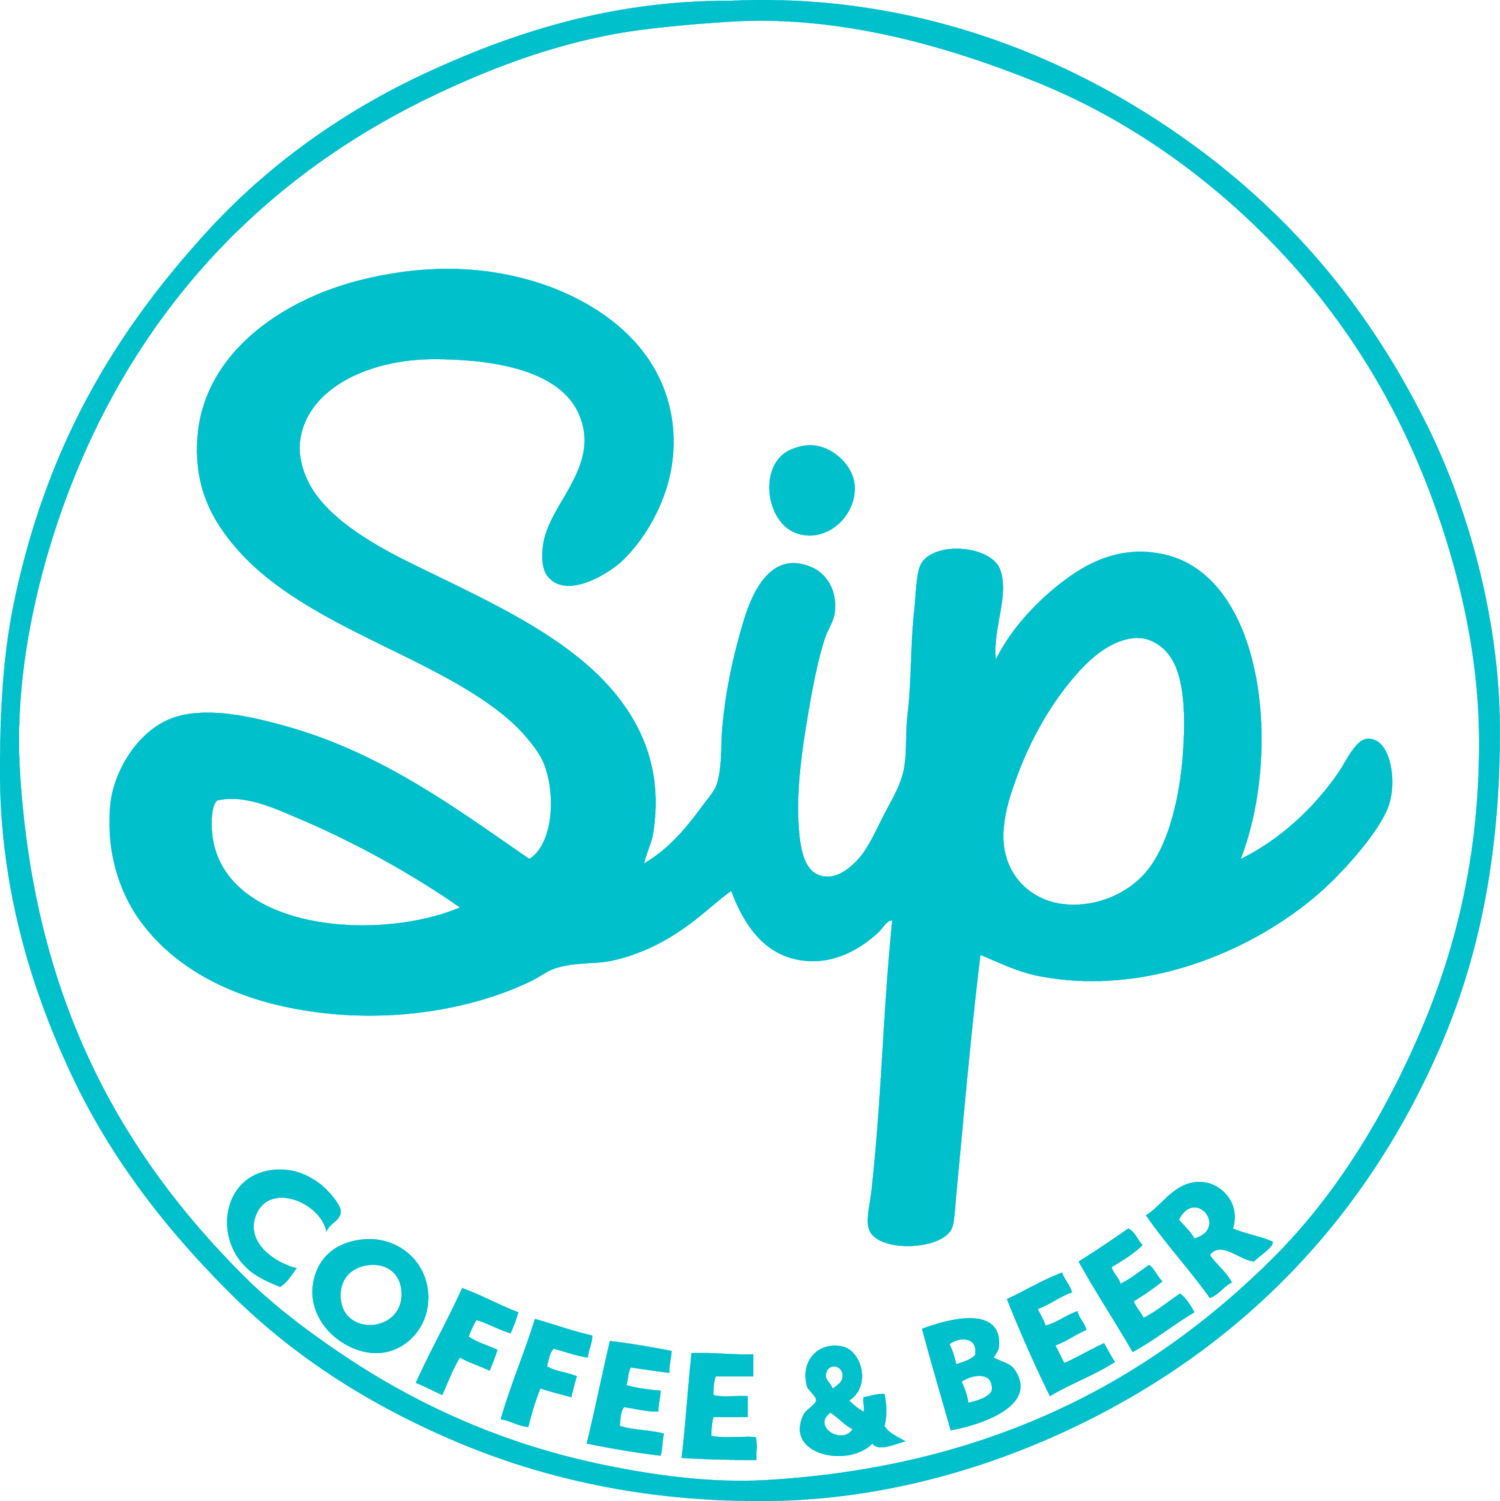 Sip Coffee and Beer